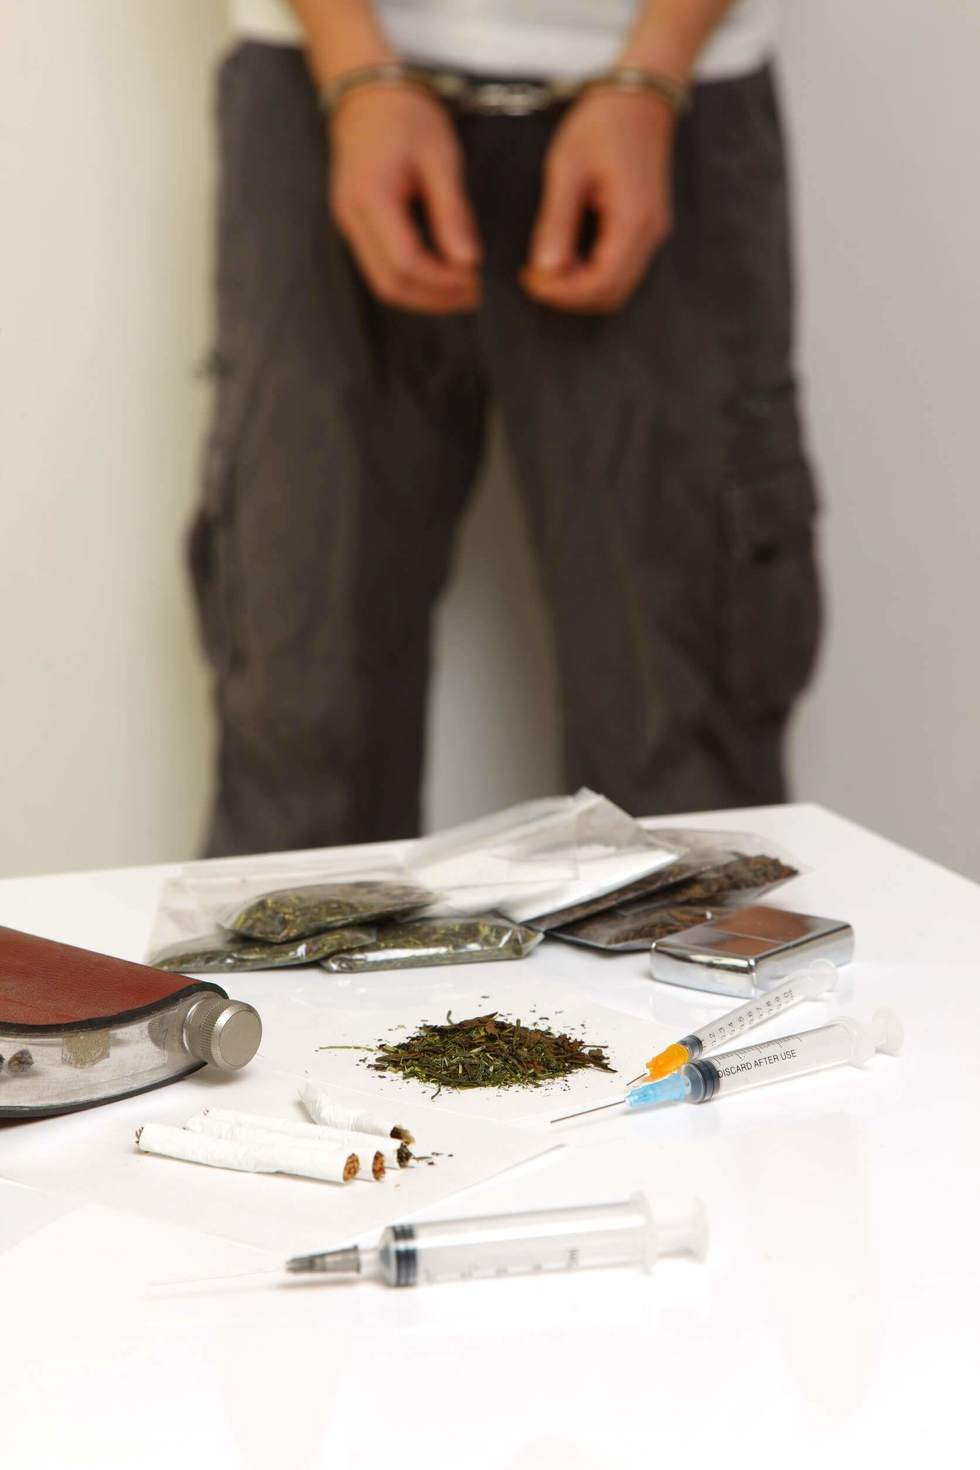 One surprising new tactic cops are using to catch drug crimes